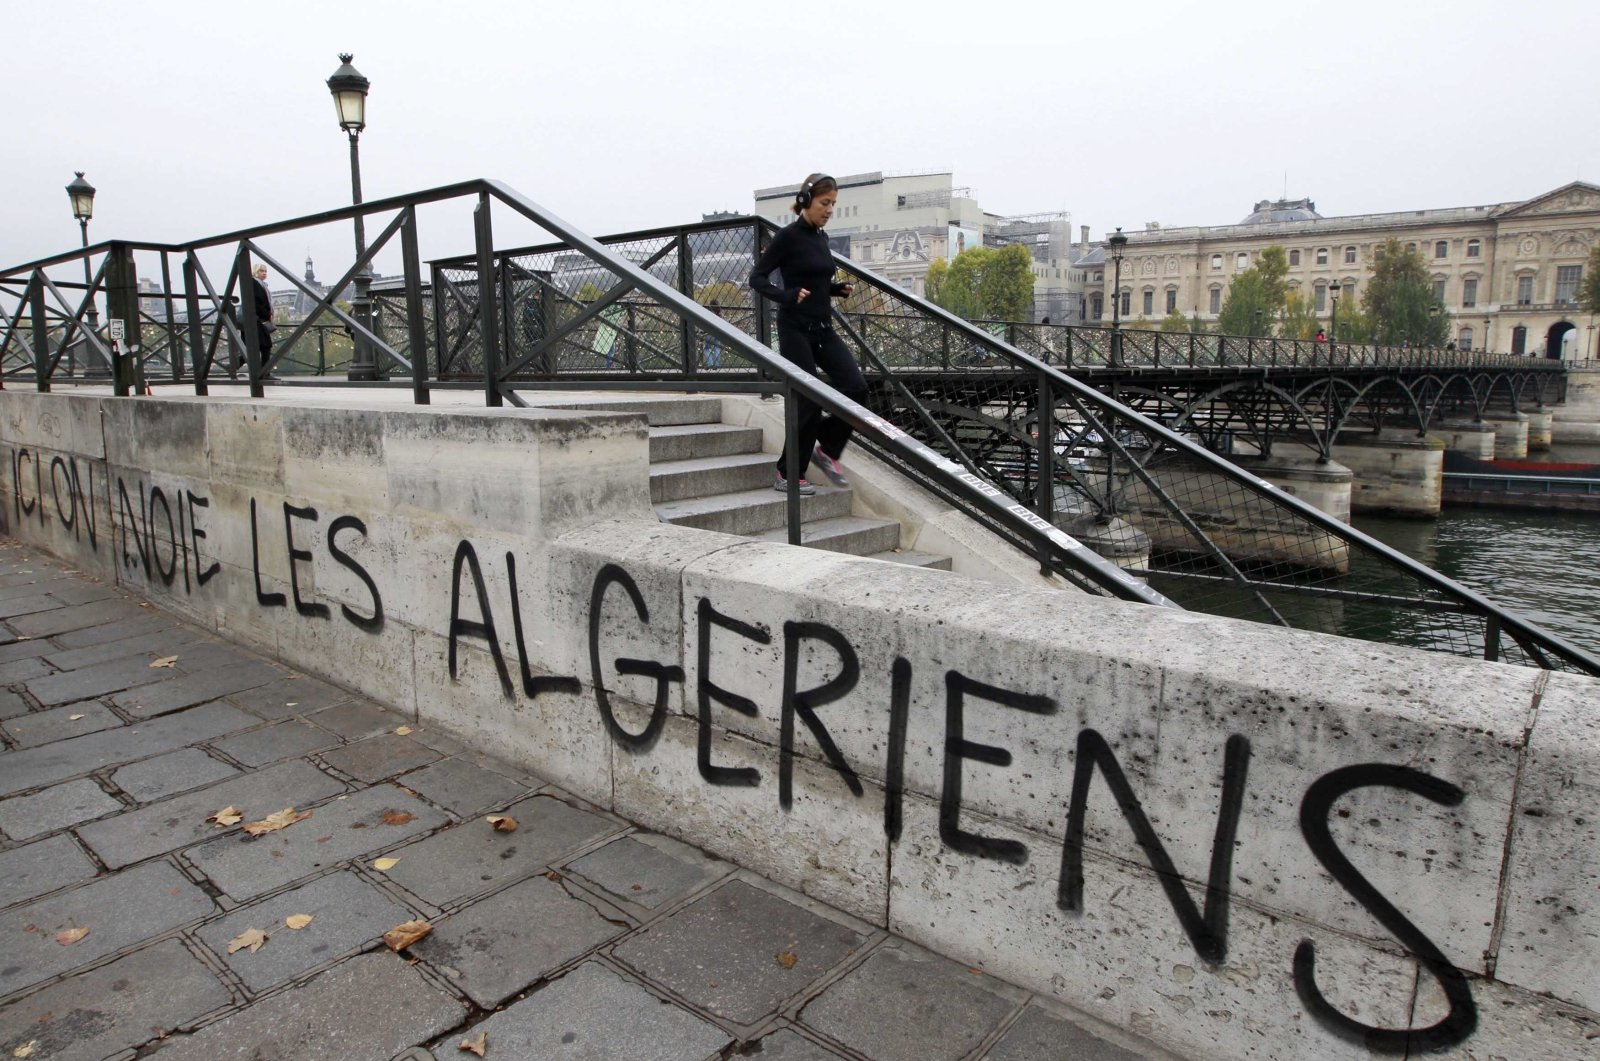 """A slogan """"We drown Algerians here"""" is painted on the wall of the Seine River banks near the Pont des Arts in Paris, France, Oct. 17, 2011. (Reuters Photo)"""